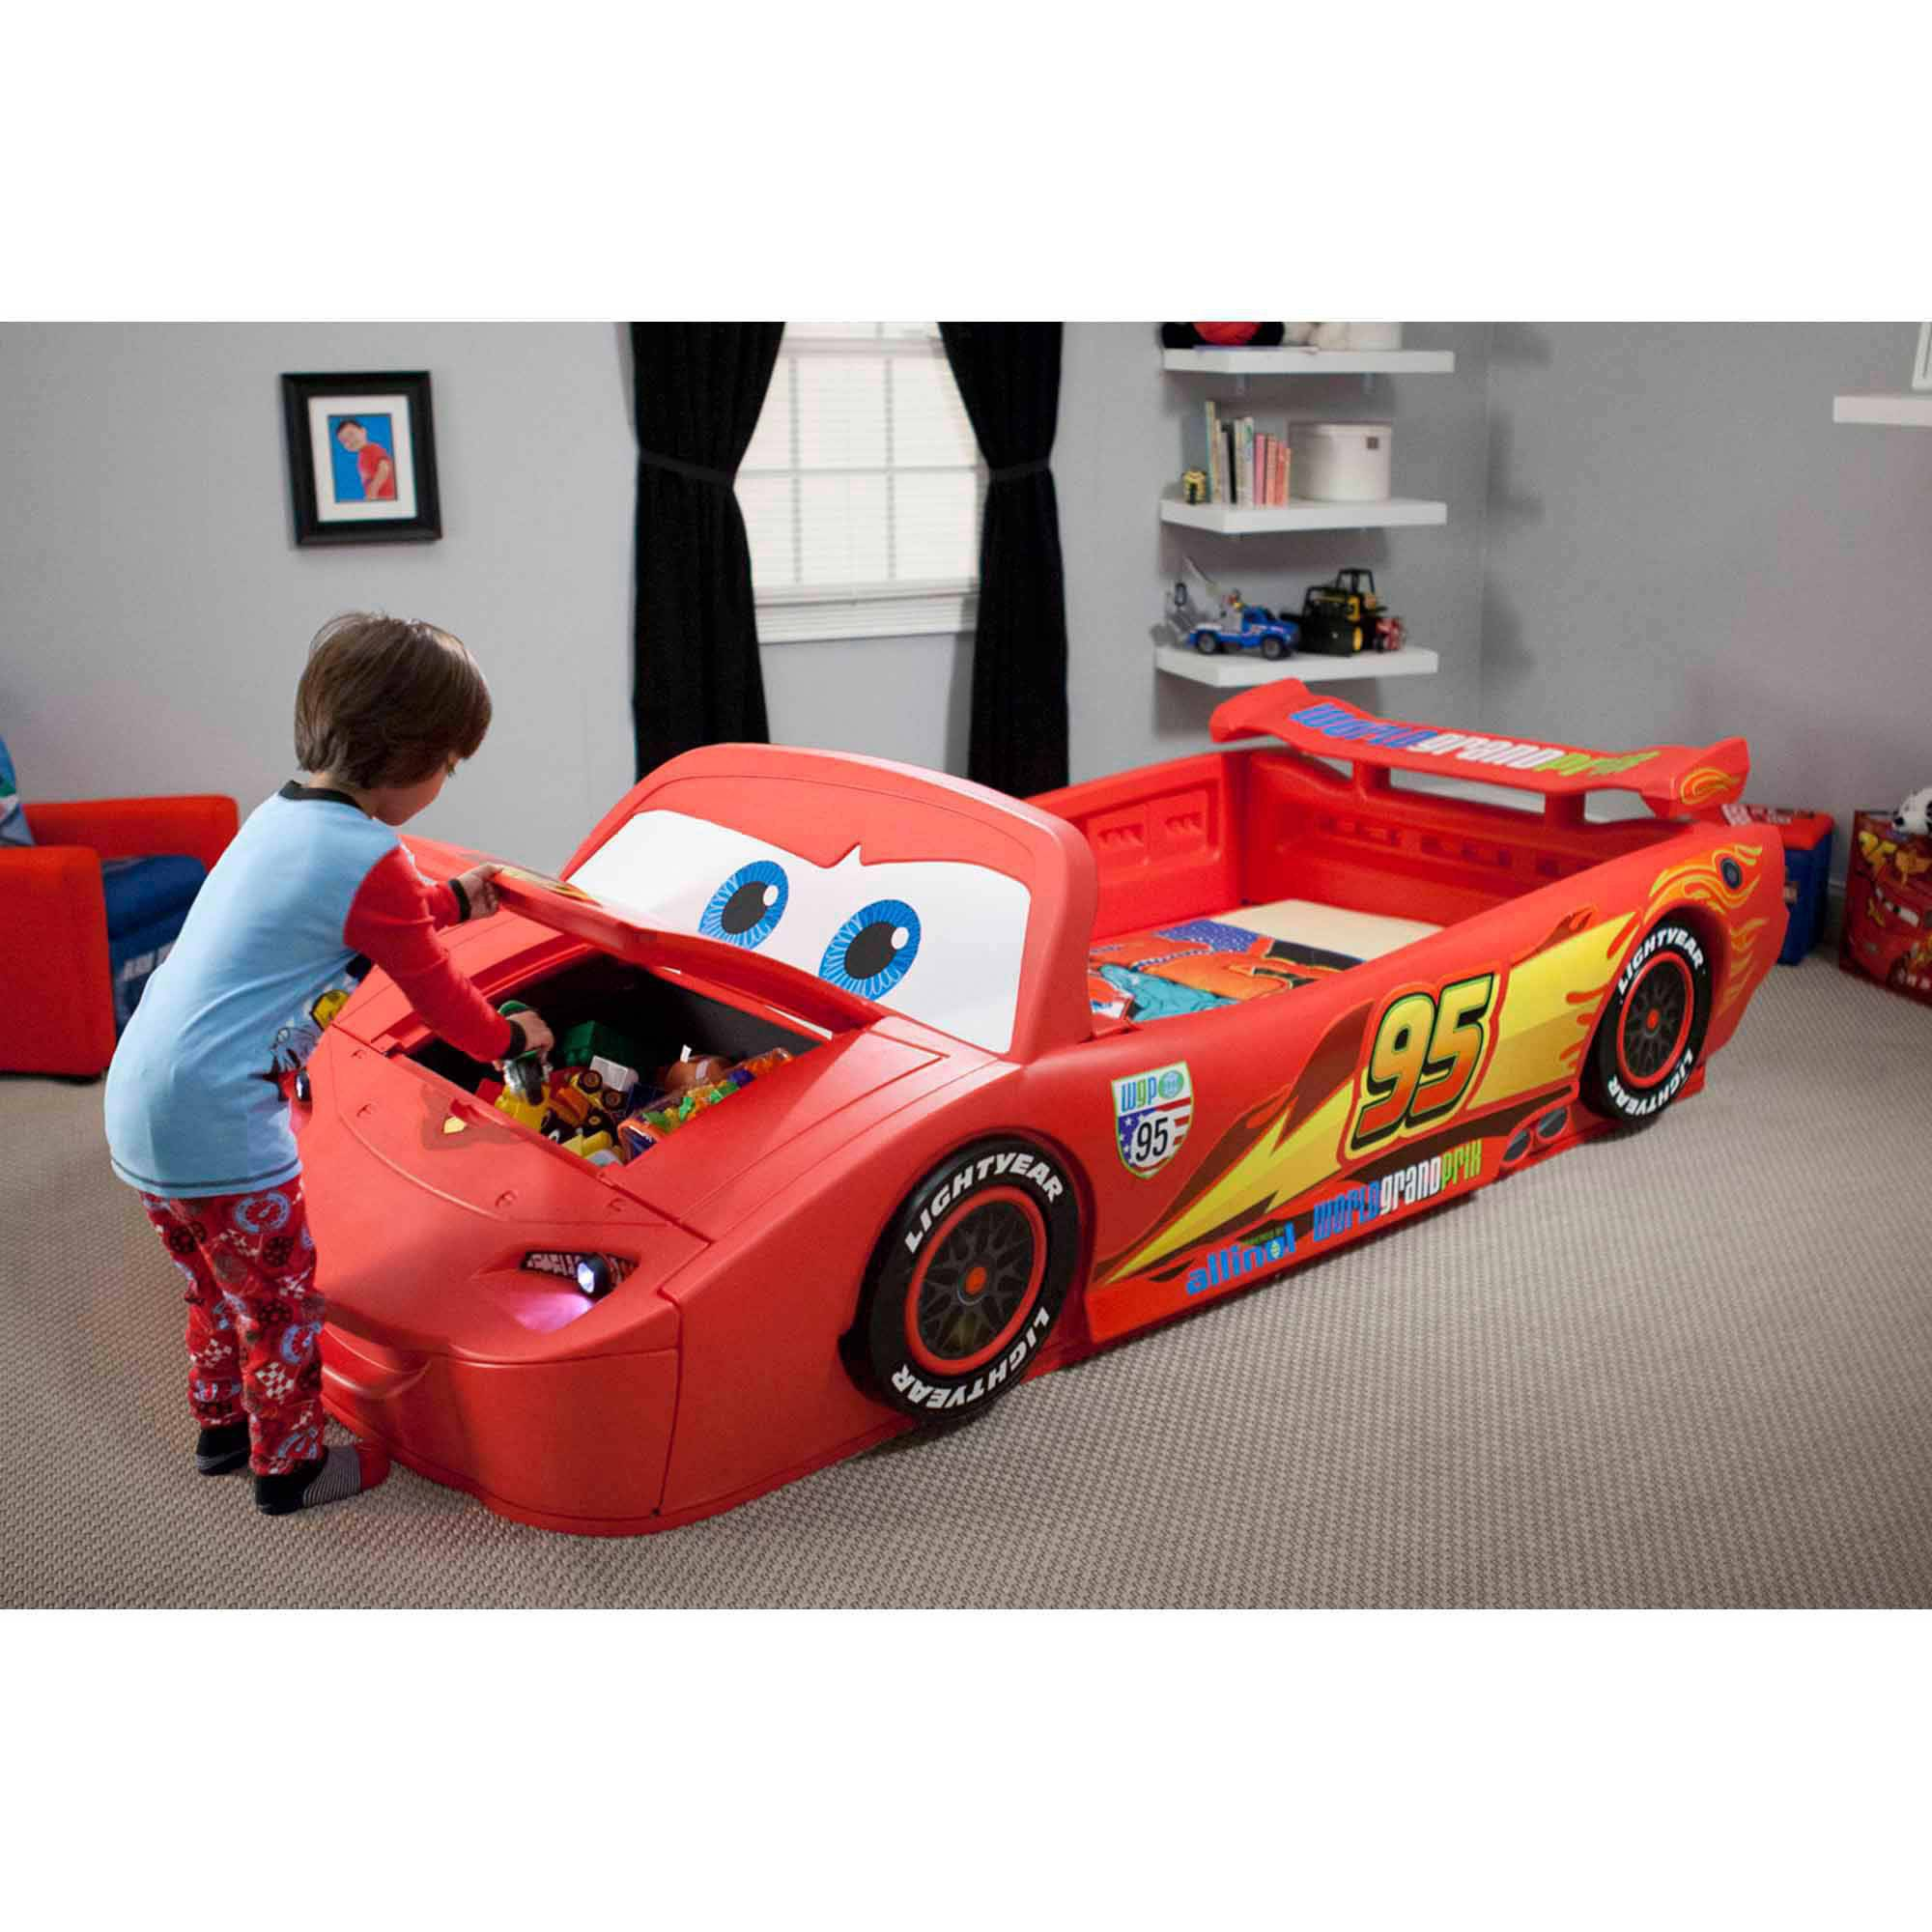 Disney Cars Bedroom Set on disney cars mcqueen mater, disney cars dishes, disney cars twin bedding comforter set, disney cars kitchen, sweet dreams bedroom set, disney cars tv, disney cars wedding set, disney cars party set, spiderman bedroom set, disney cars bench, disney cars bed, boys race car bedroom set, dr who bedroom set, shrek bedroom set, disney cars table set, disney cars curtain rod, disney cars crib sheets, the wiggles bedroom set, disney pixar cars twin sheet set, disney cars bedding set full,